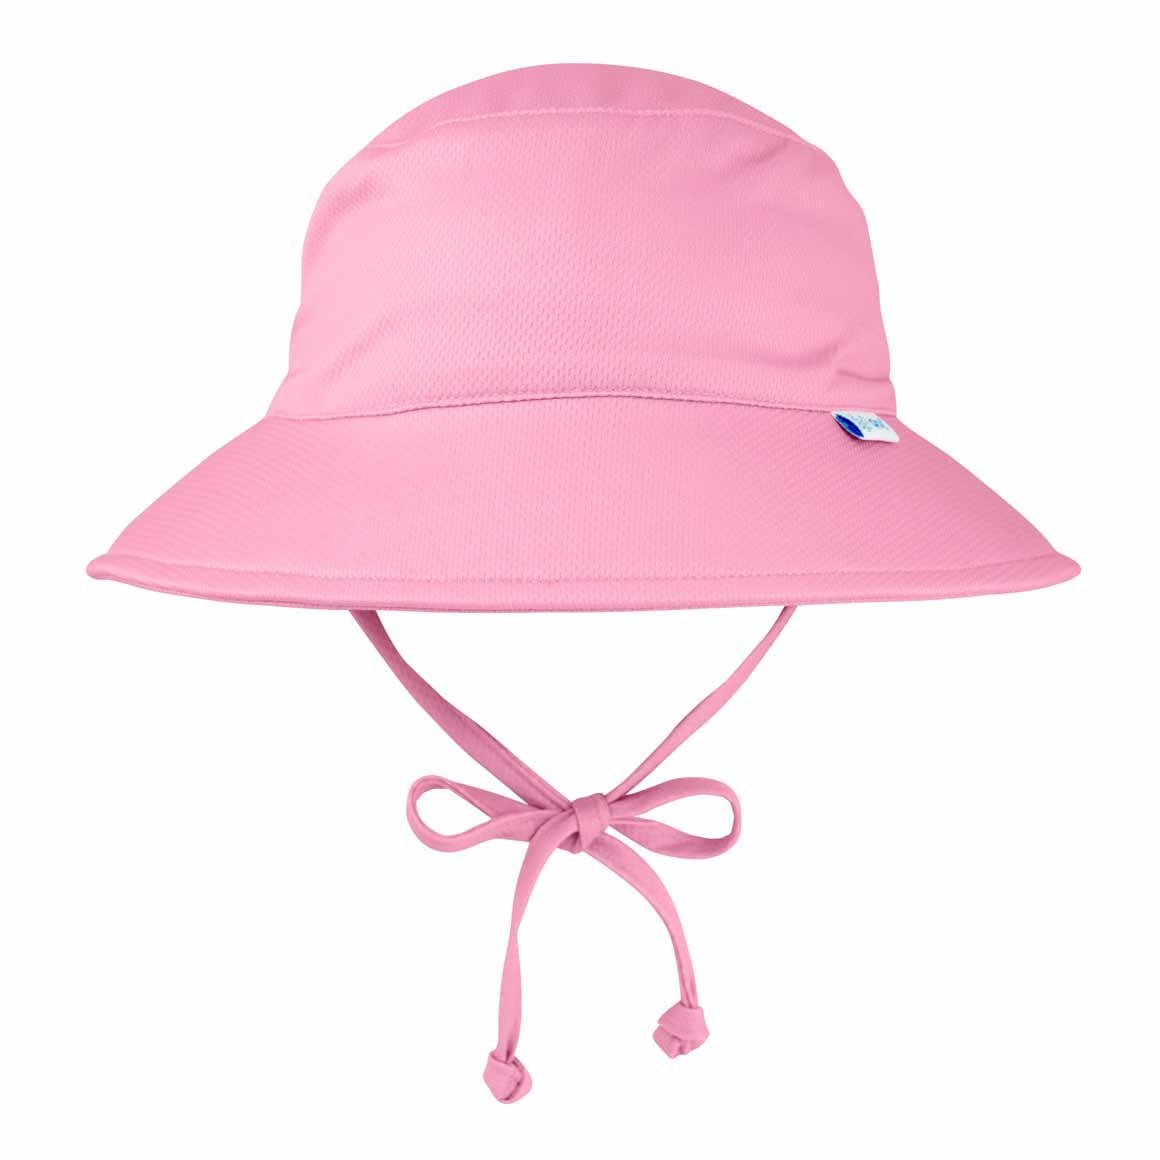 Breathable Bucket Sun Protection Hat-Light Pink | Trada Marketplace